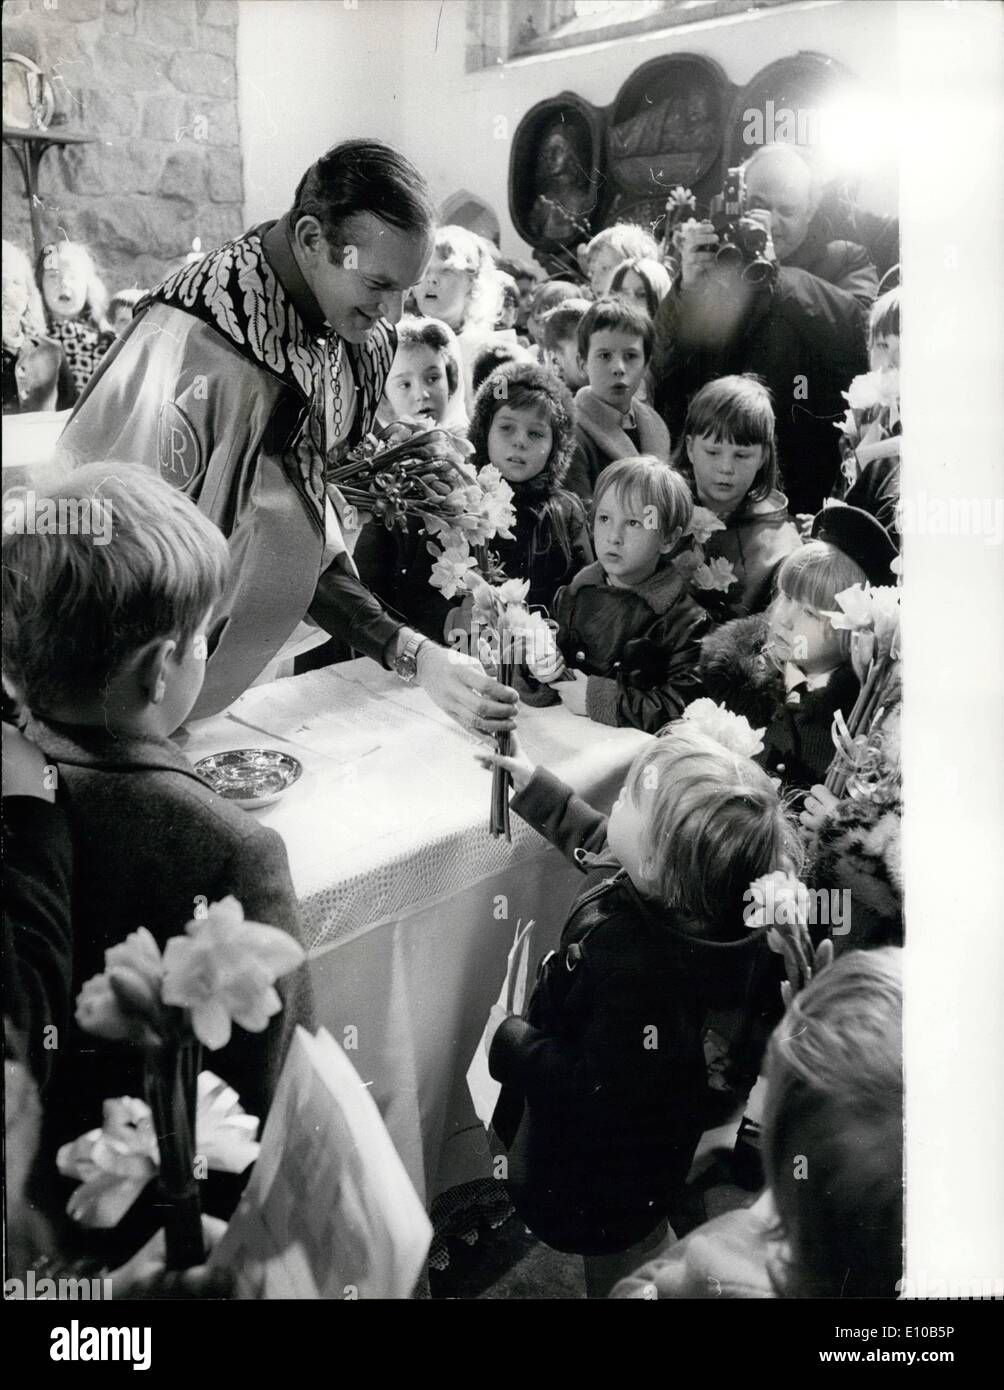 Mar. 03, 1972 - Mothering Sunday Service: The Rev. John Nicholls, the Queen's Chaplain to the Tower of London, handing members of his Congregation tokens of Spring and Mothering Sunday which they took them after a service commemorating a thousand-year-old custom at the Chapel Royal of St. Peter and Vincula yesterday. - Stock Image